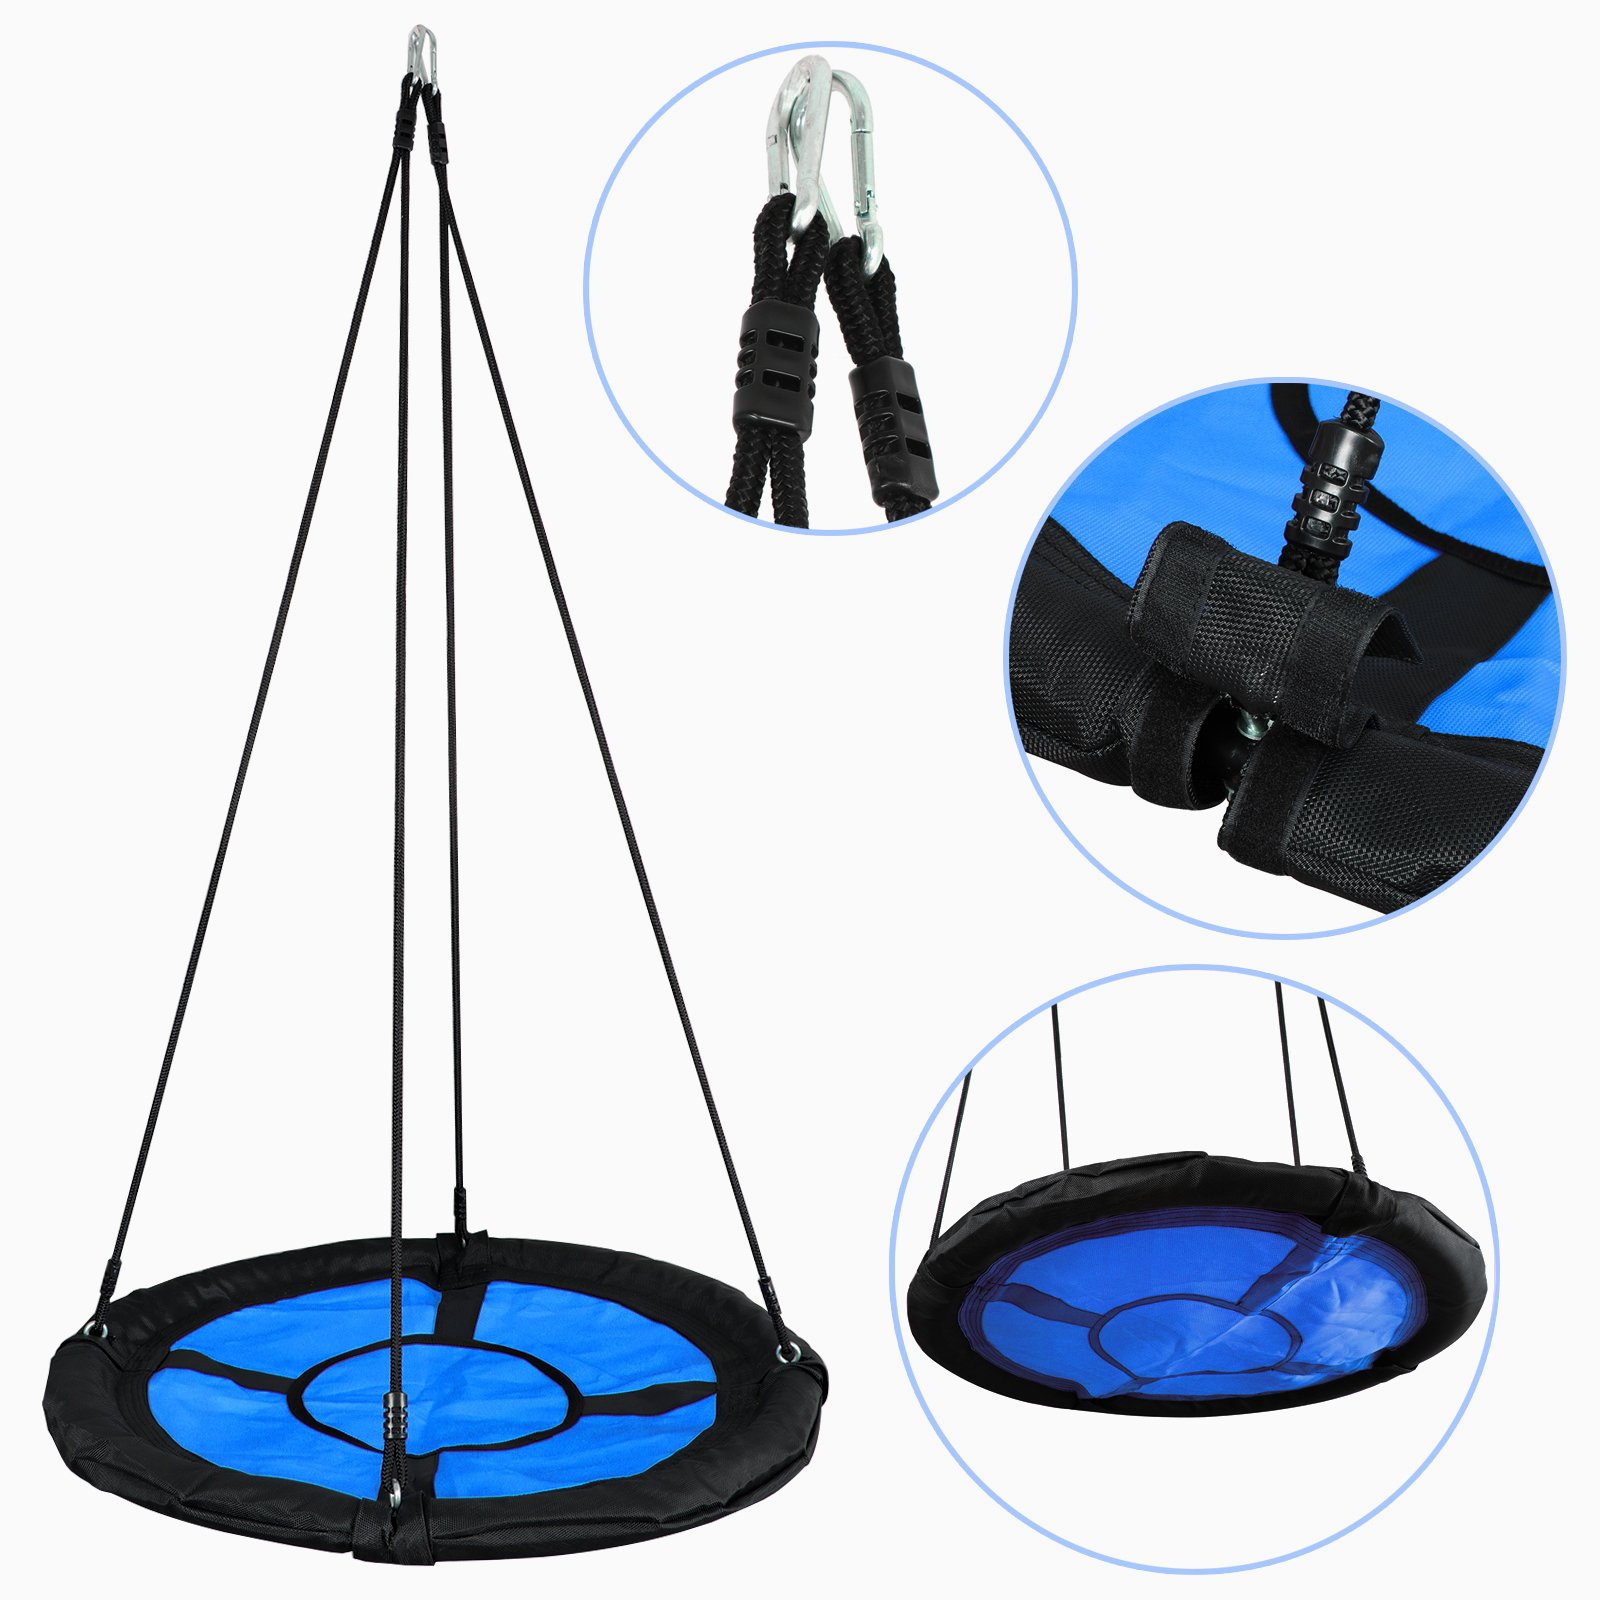 SUPER DEAL Swing Set, Swing + Stand Combo (Blue, XXL) by SUPER DEAL (Image #2)